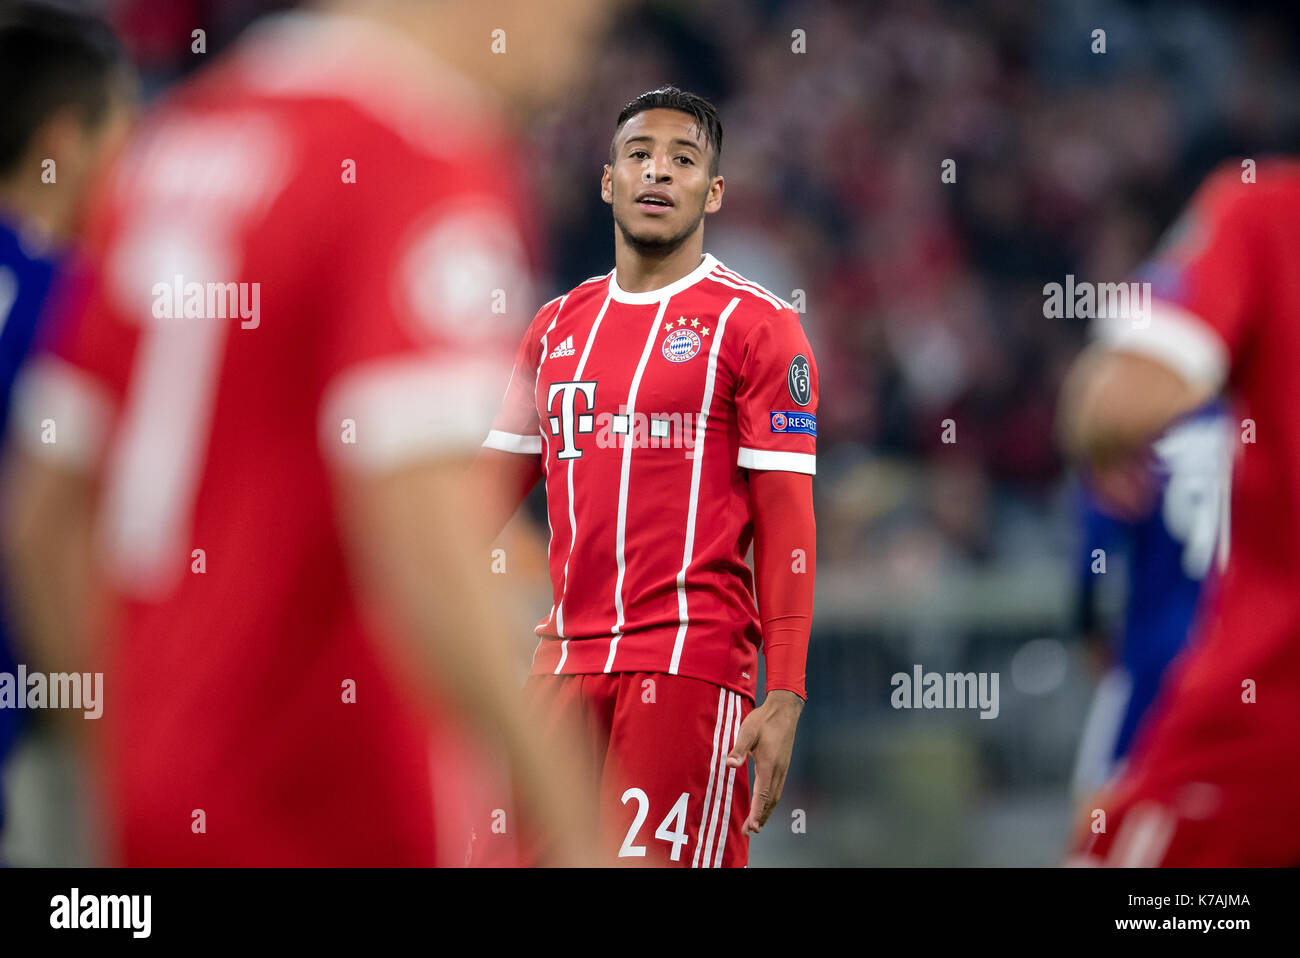 Munich's Corentin Tolisso pictured during the UEFA Champions League football match between FC Bayern Munich and RSC Anderlecht at the Allianz Arena in Munich, Germany, 12 September 2017.  - NO WIRE SERVICE - Photo: Thomas Eisenhuth/dpa-Zentralbild/ZB - Stock Image